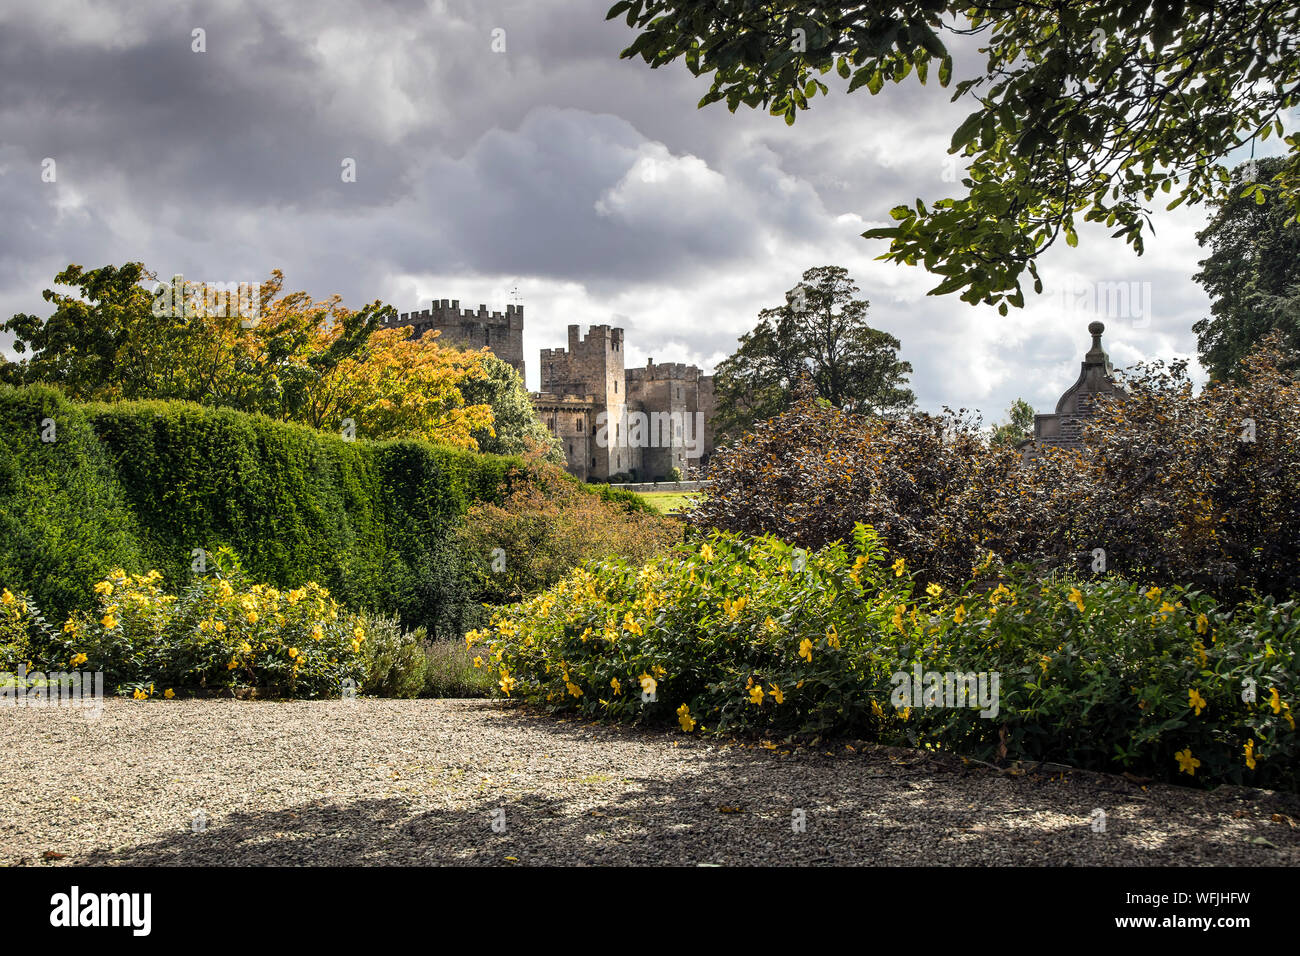 Raby Castle, Staindrop, Teesdale, County Durham, UK. 31st August 2019. UK Weather.  After a morning of sunny spells and showers the sun illuminates Raby Castle and its colourful gardens, which are starting to develop some autumnal colours.  Credit: David Forster/Alamy Live News Stock Photo